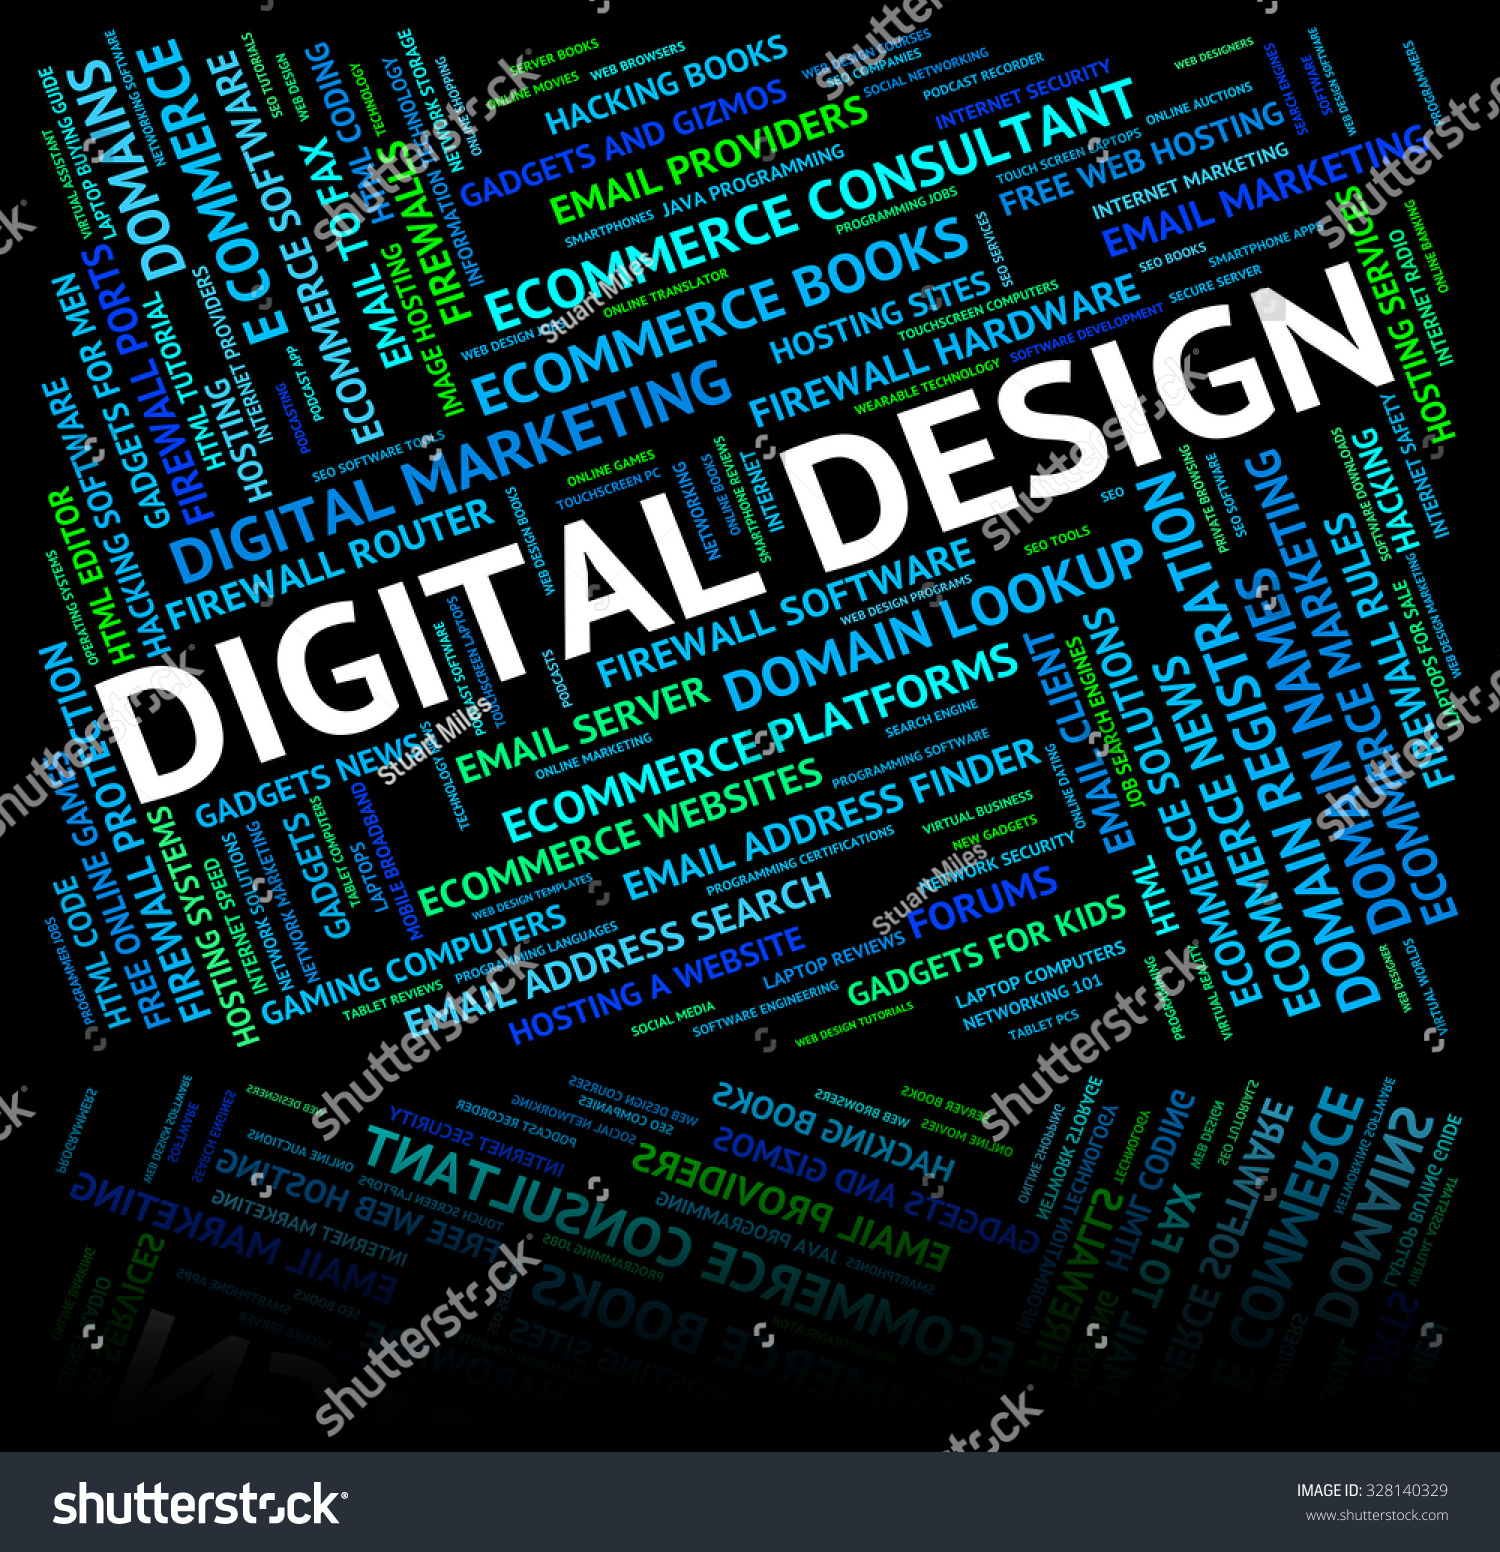 Design Digital Digital Design Meaning High Tec And Designed Stock Photo